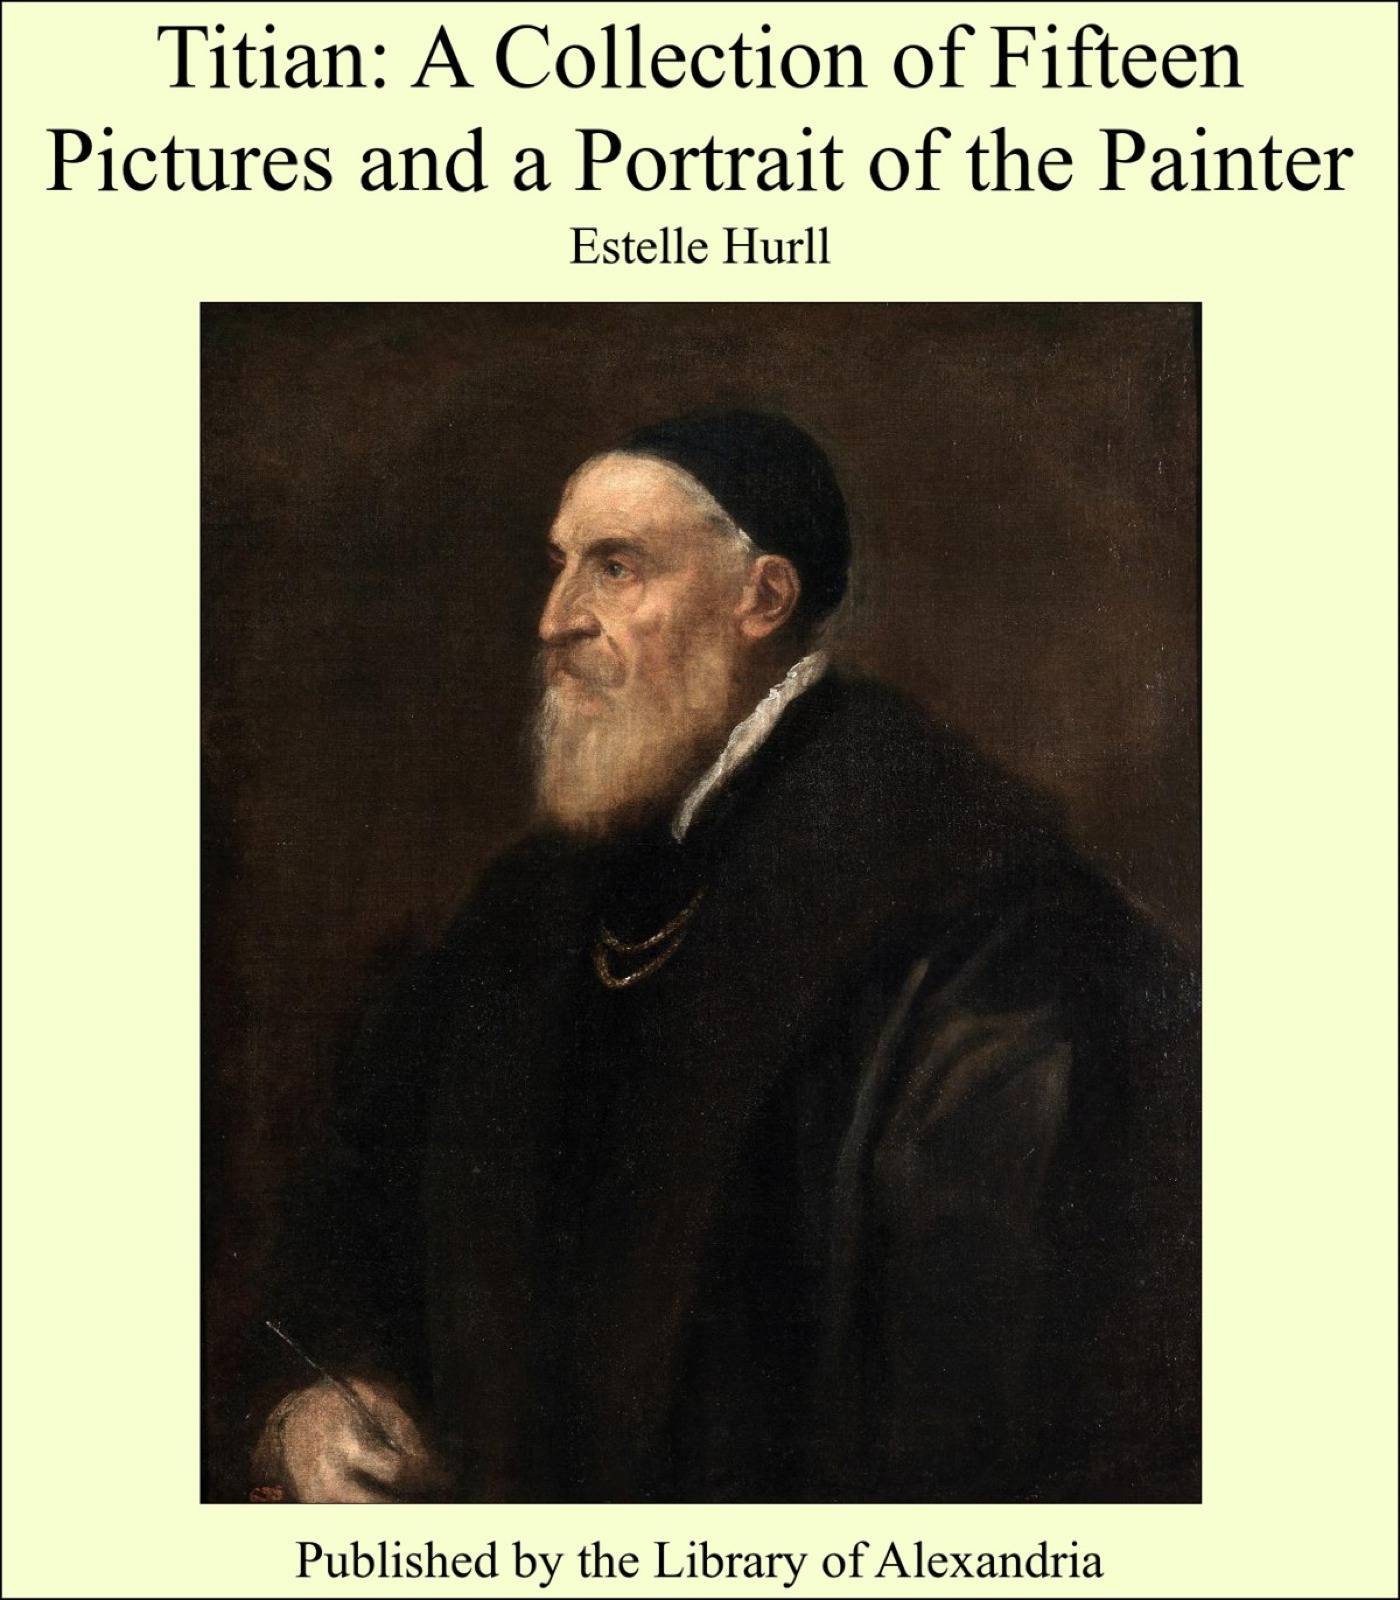 Titian: A Collection of Fifteen Pictures and a Portrait of the Painter By: Estelle Hurll